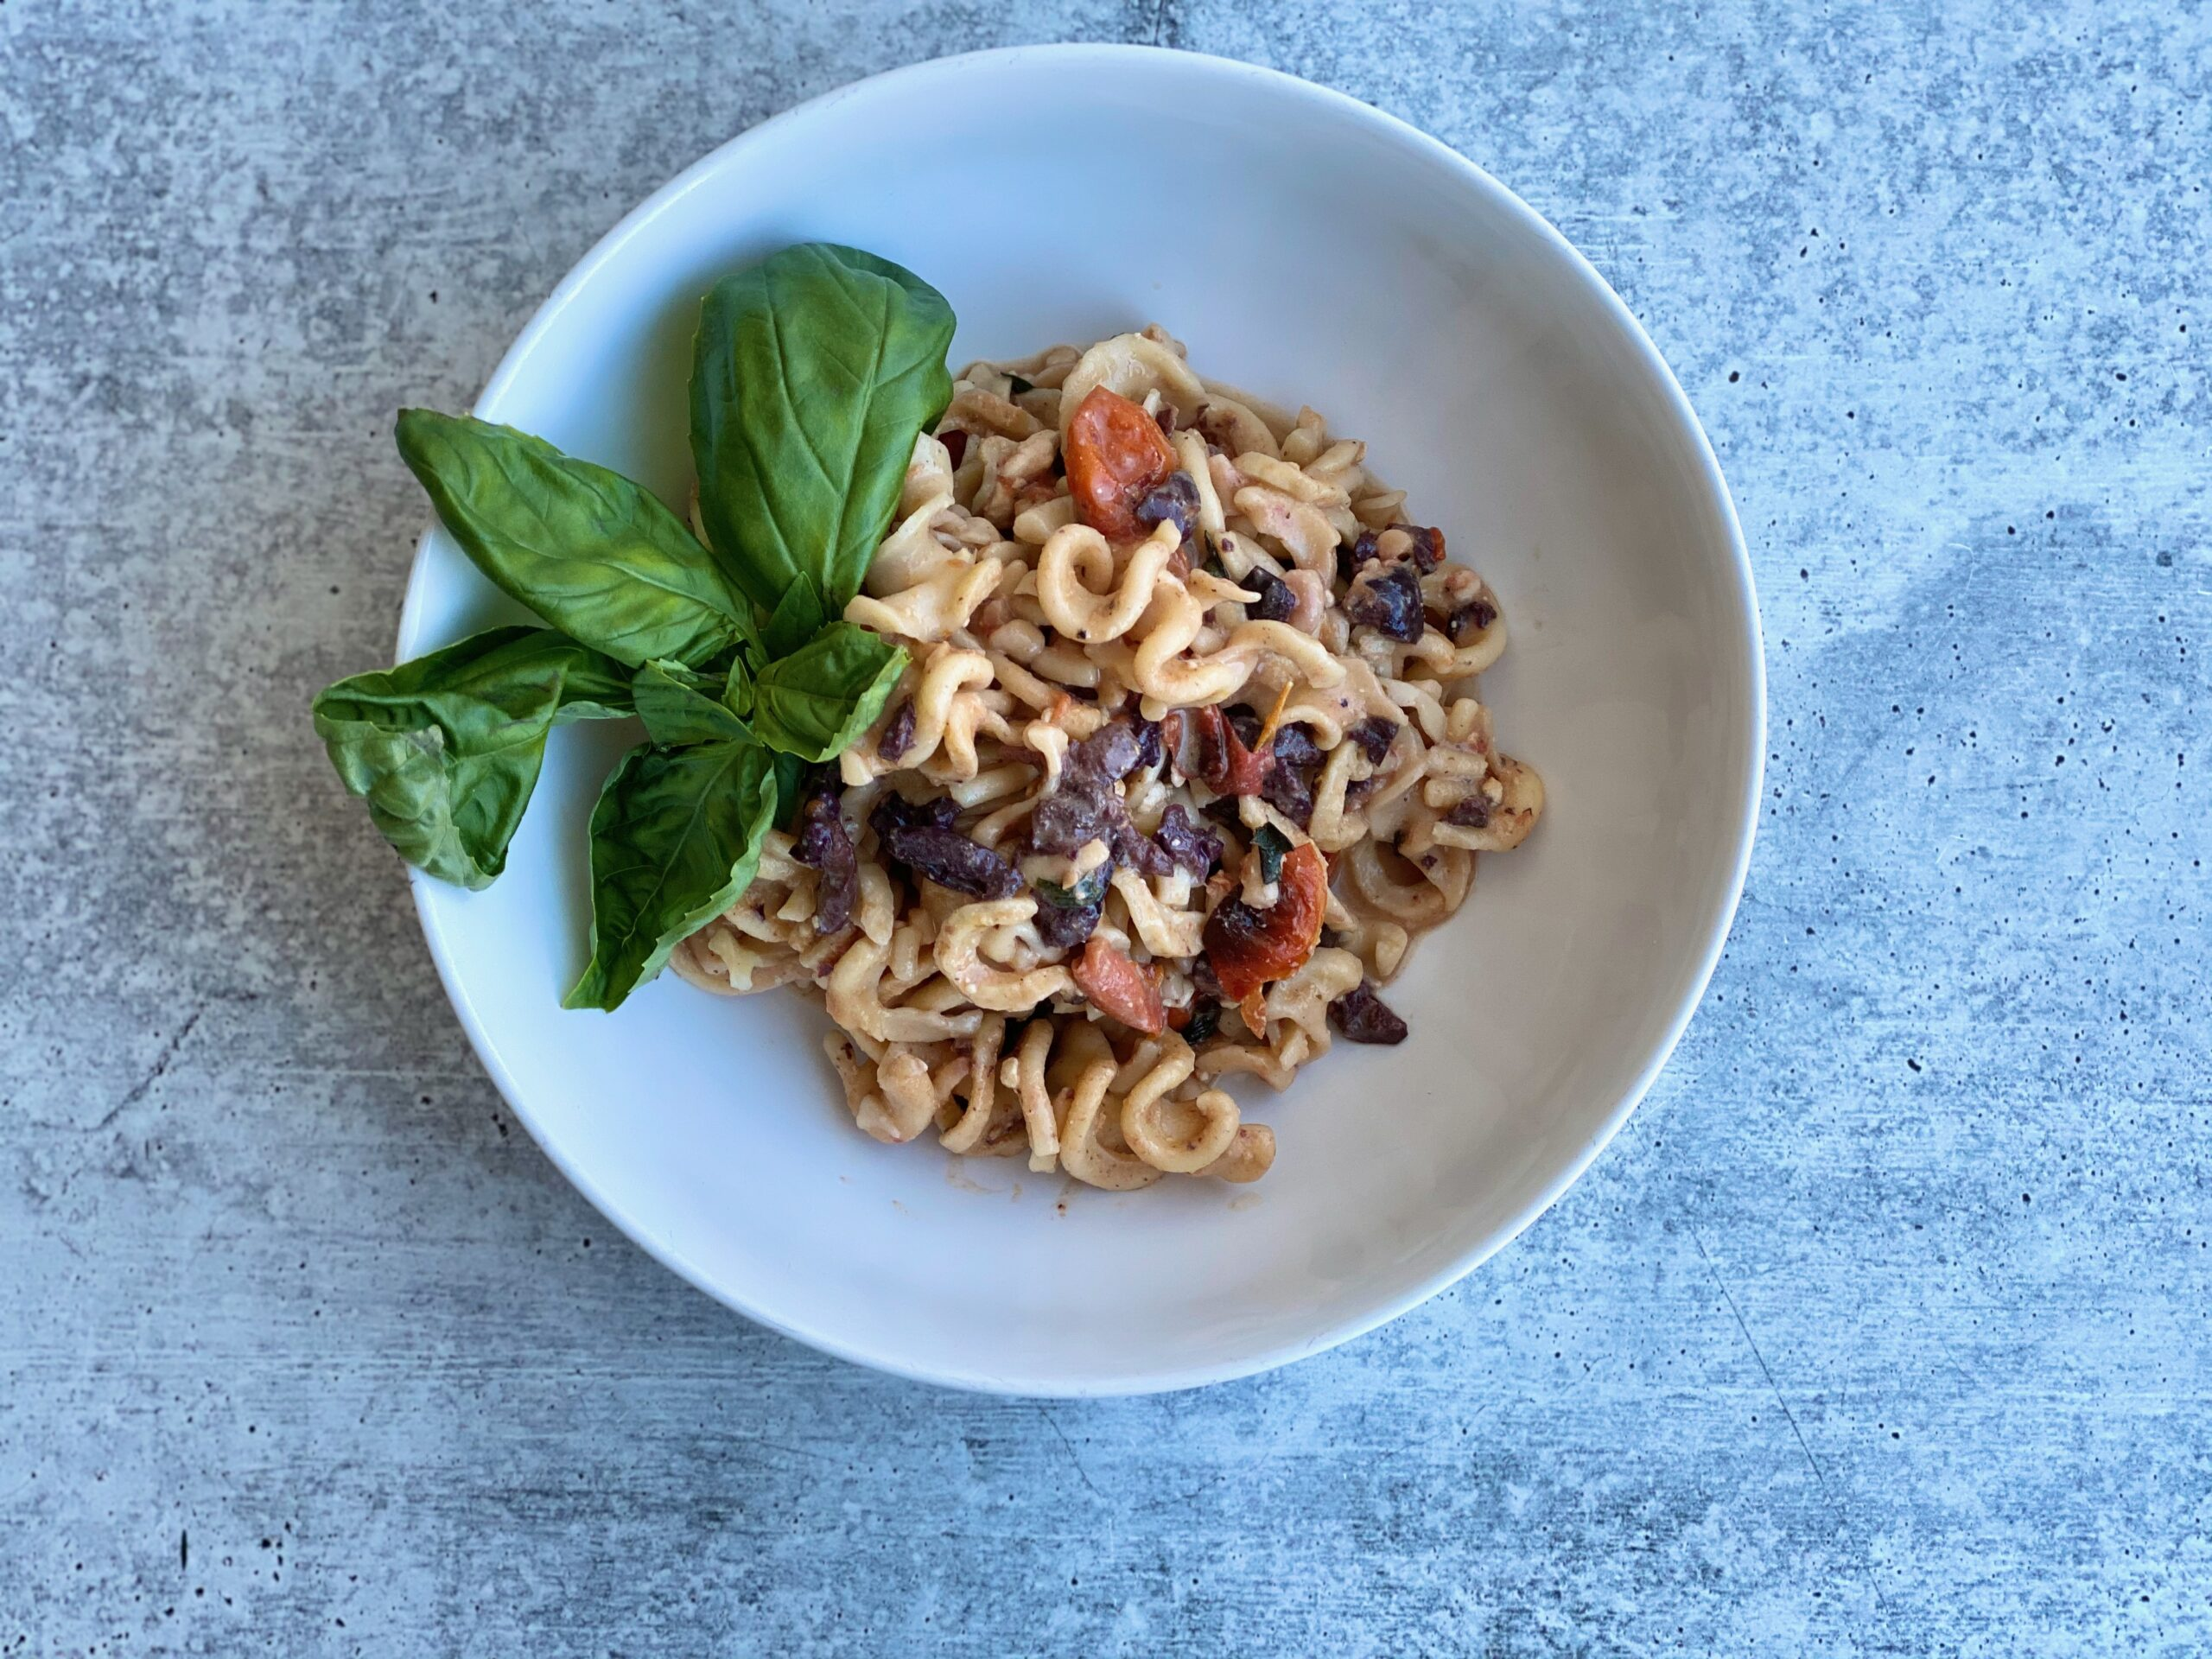 Image of pasta in a bowl with a basil garnish